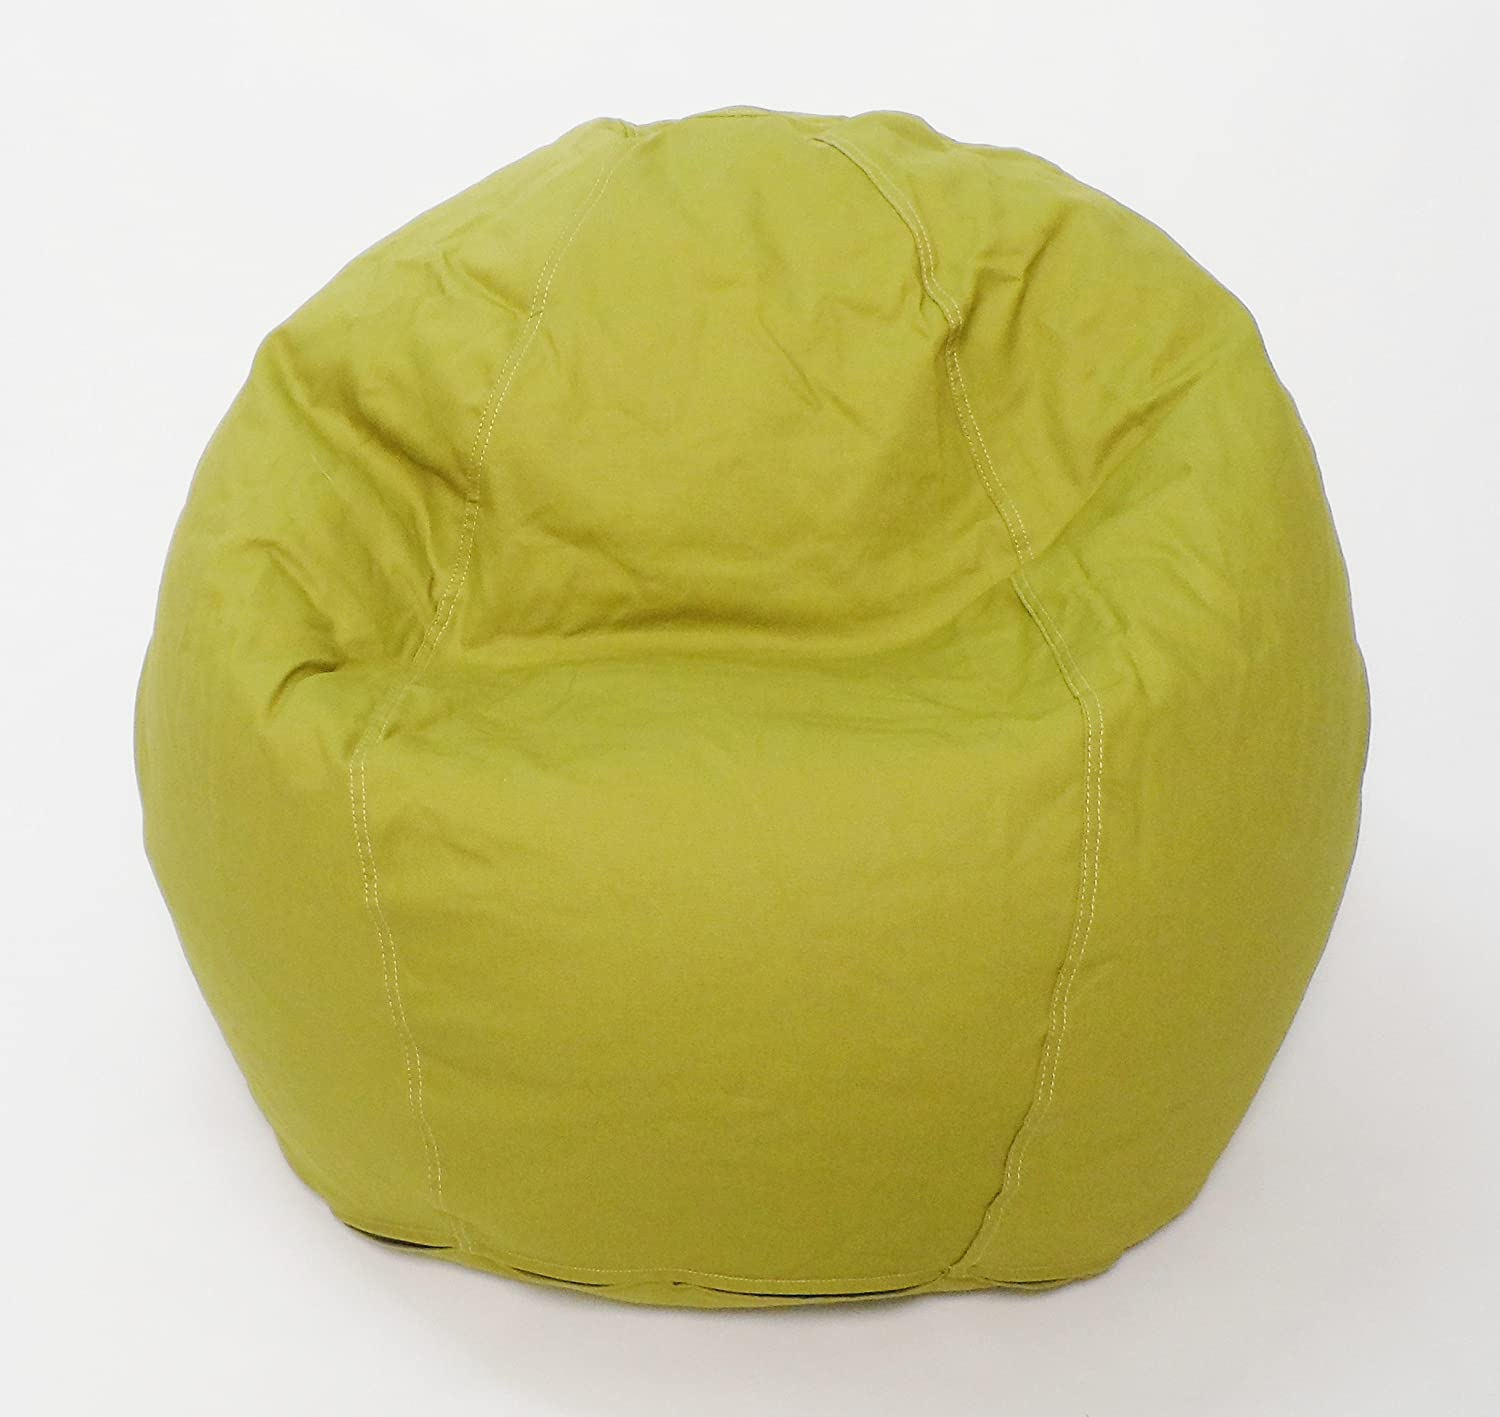 Amazon Bean Products fy Bean Beanbag Small Cotton Gray